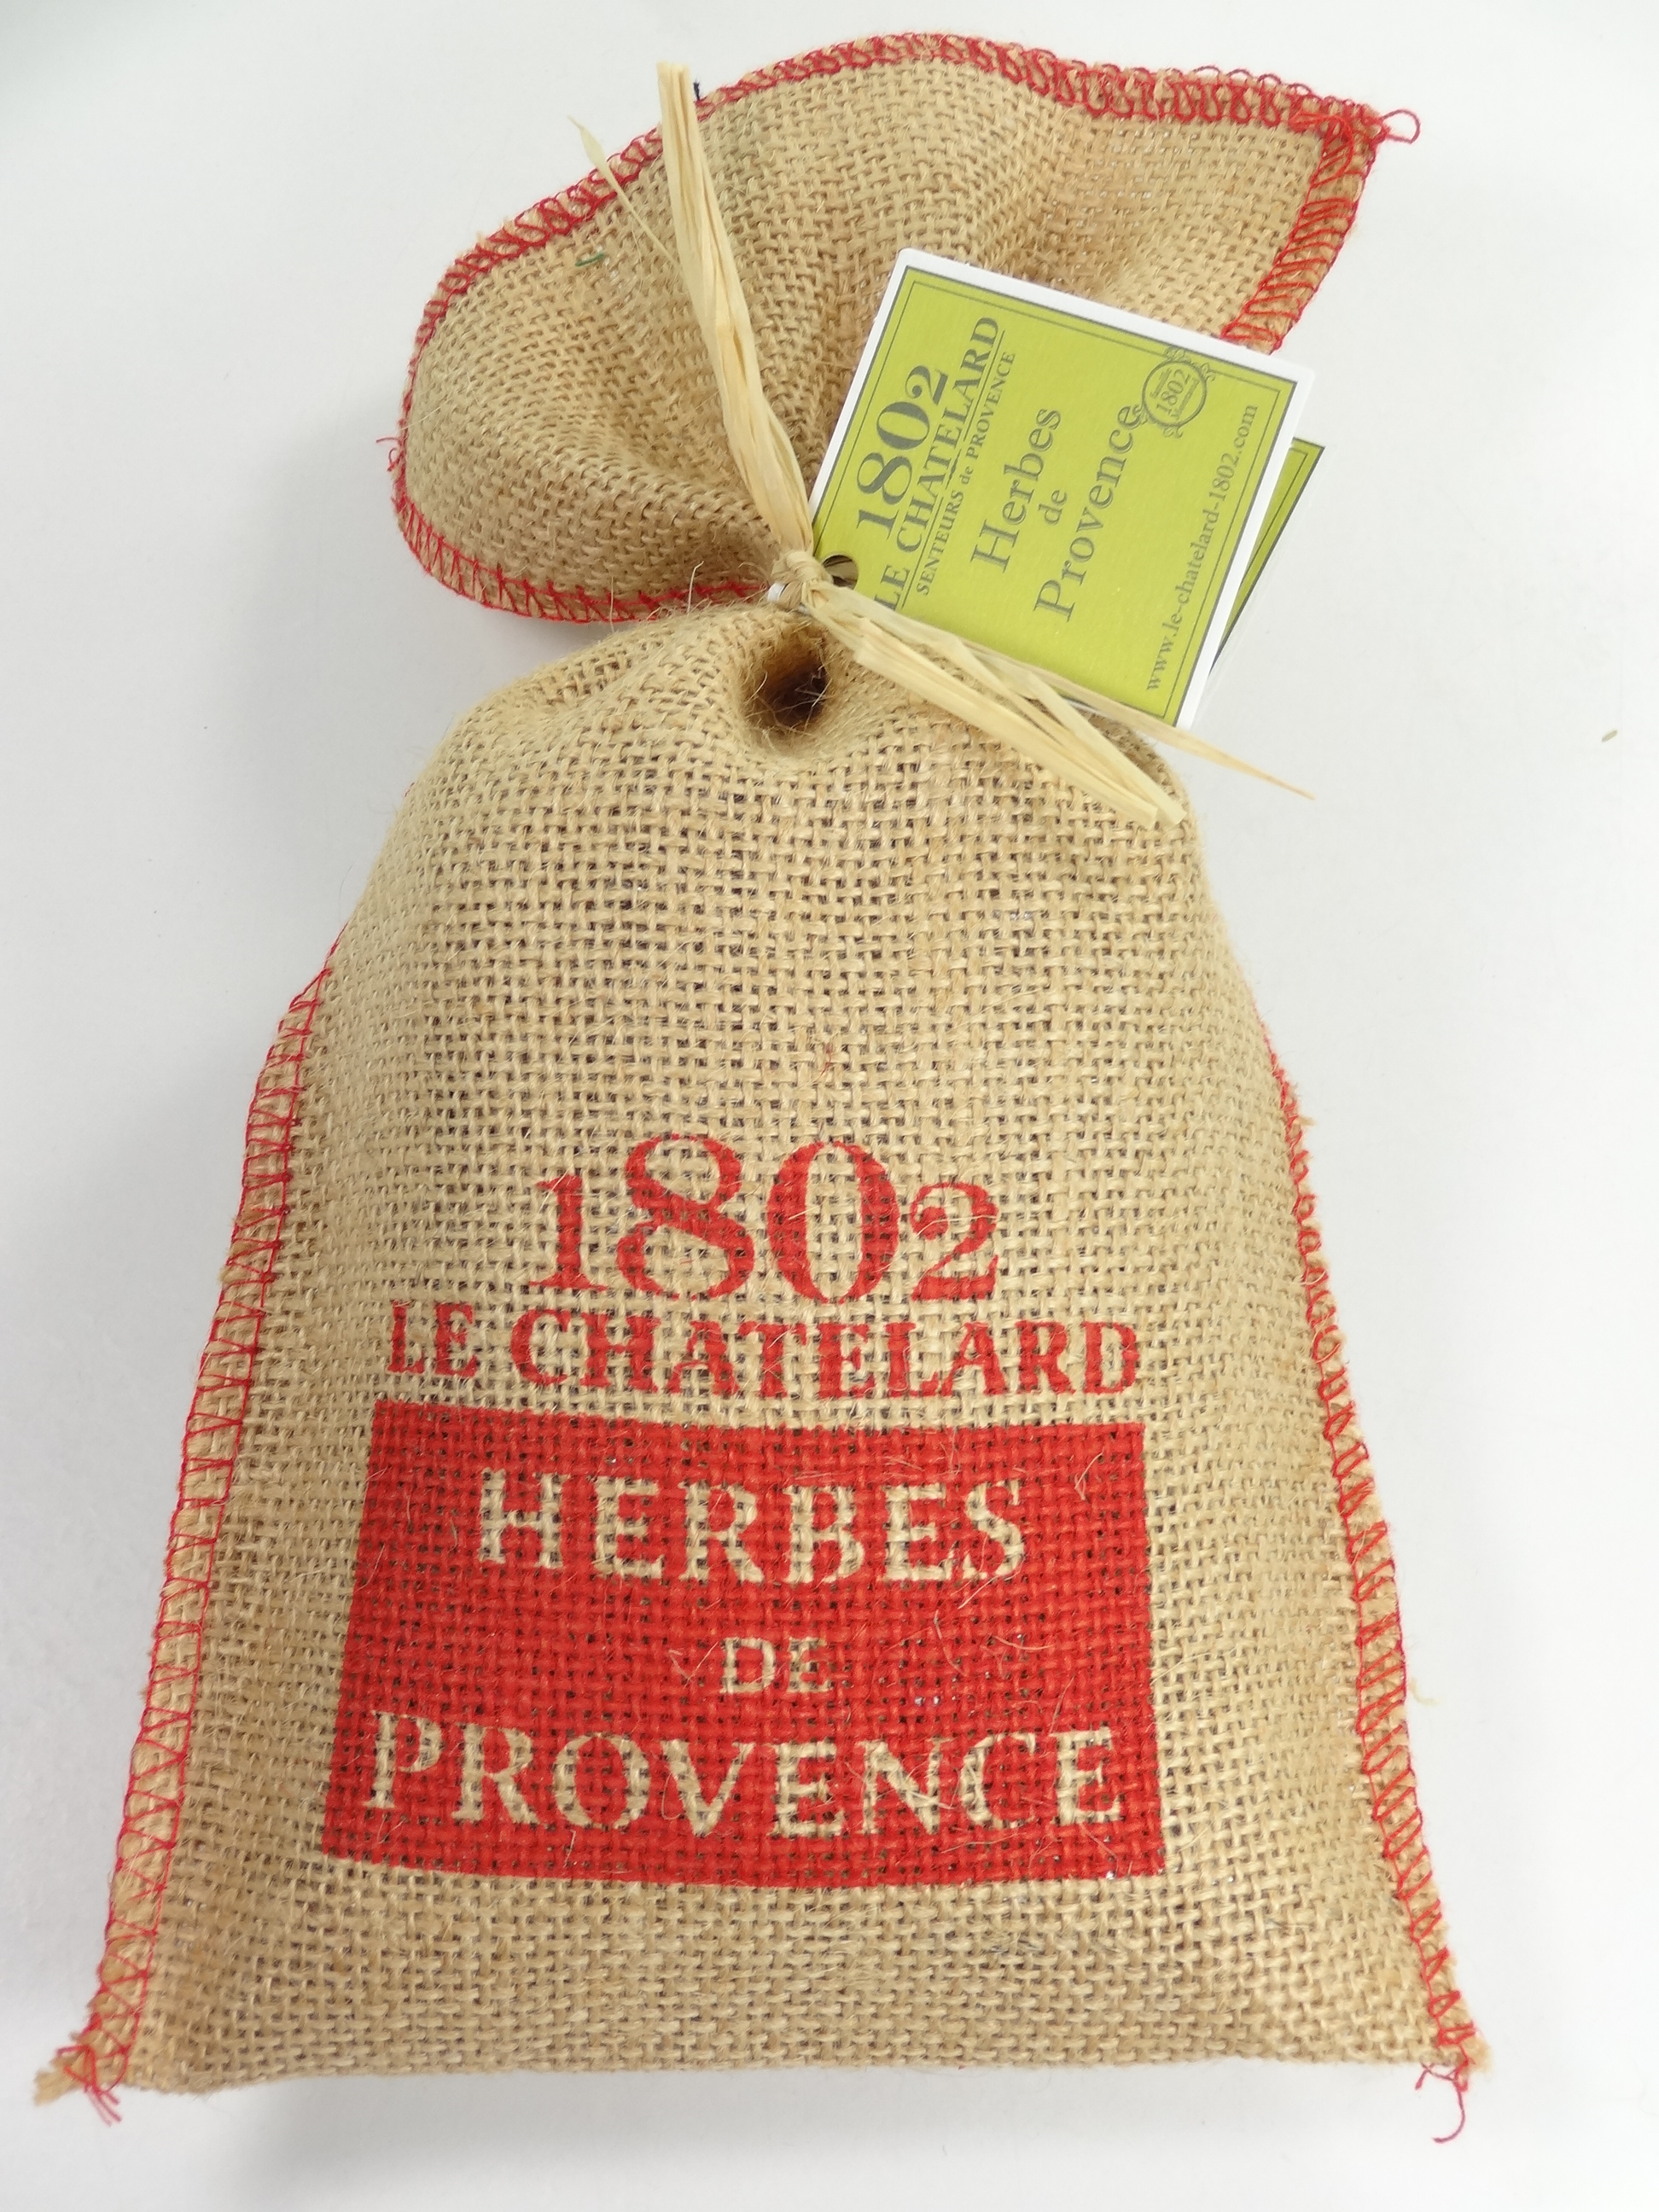 herbes de provence sachet toile de jute motif village 150g motif rouge souvenirs et id es. Black Bedroom Furniture Sets. Home Design Ideas